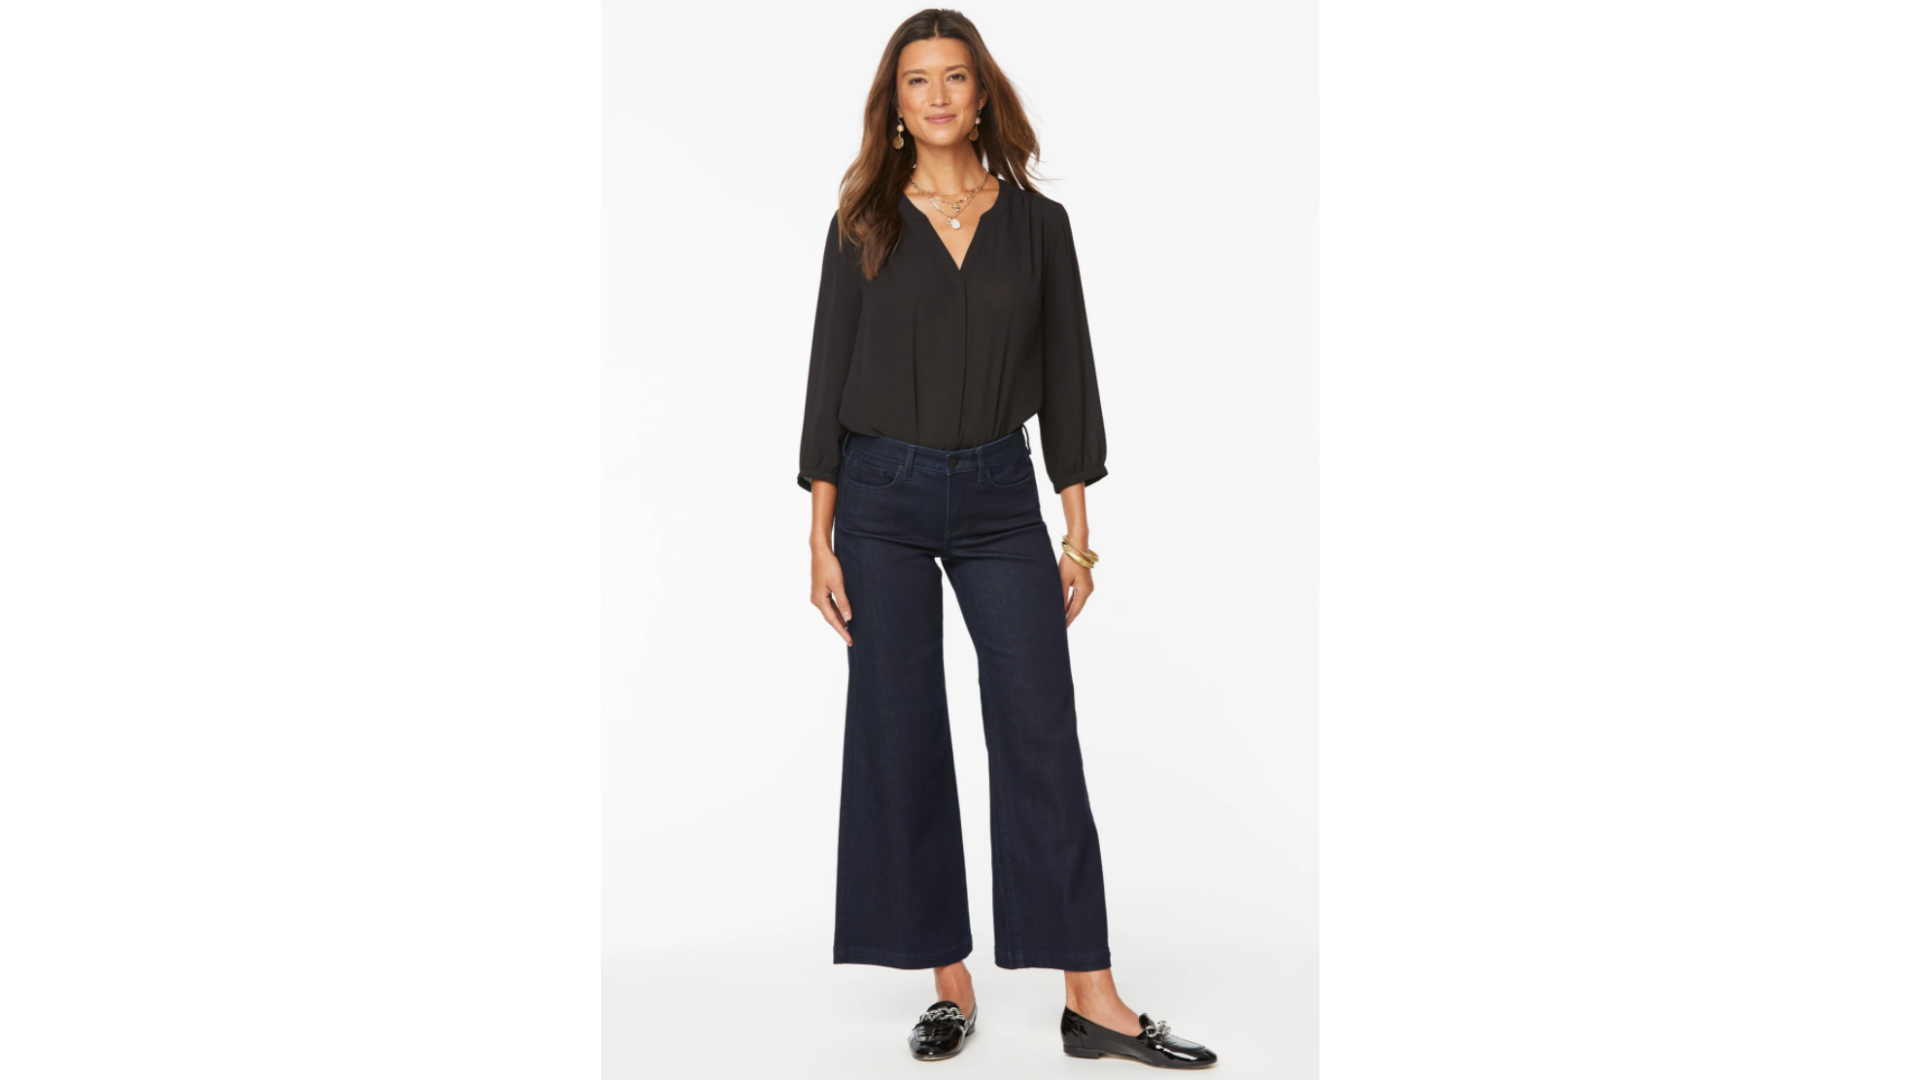 NYDJ best clothing stores for women over 50